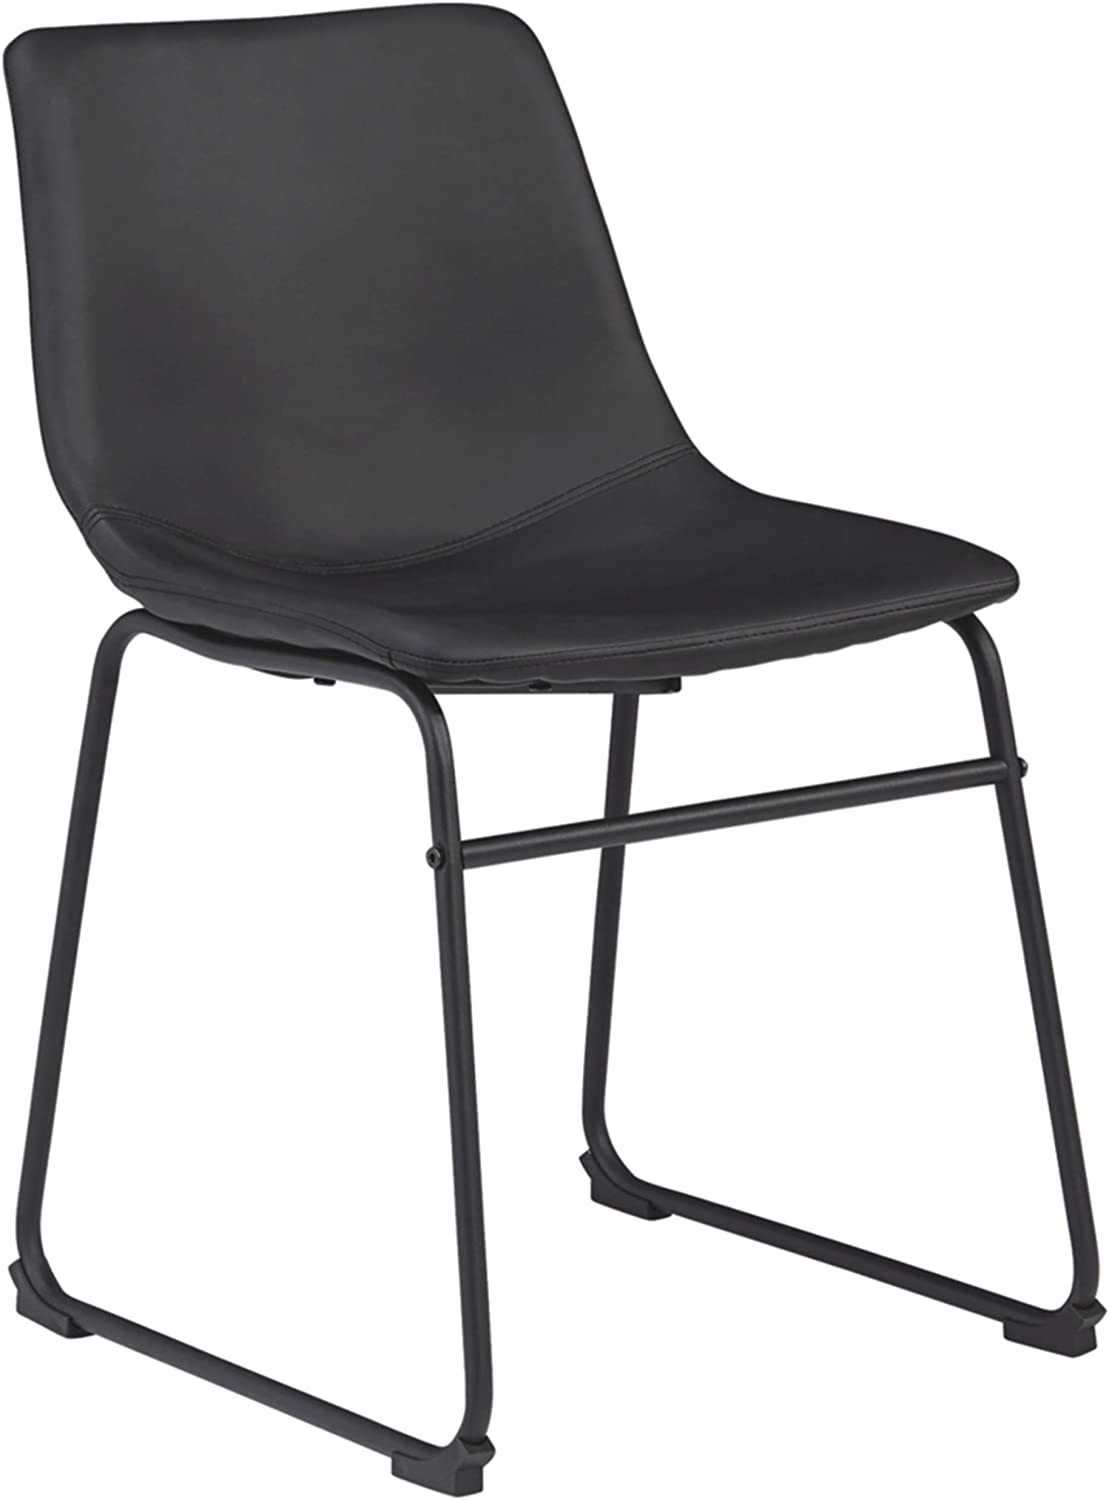 Signature Design by Ashley D372-06 Centiar Dining Chair, Black